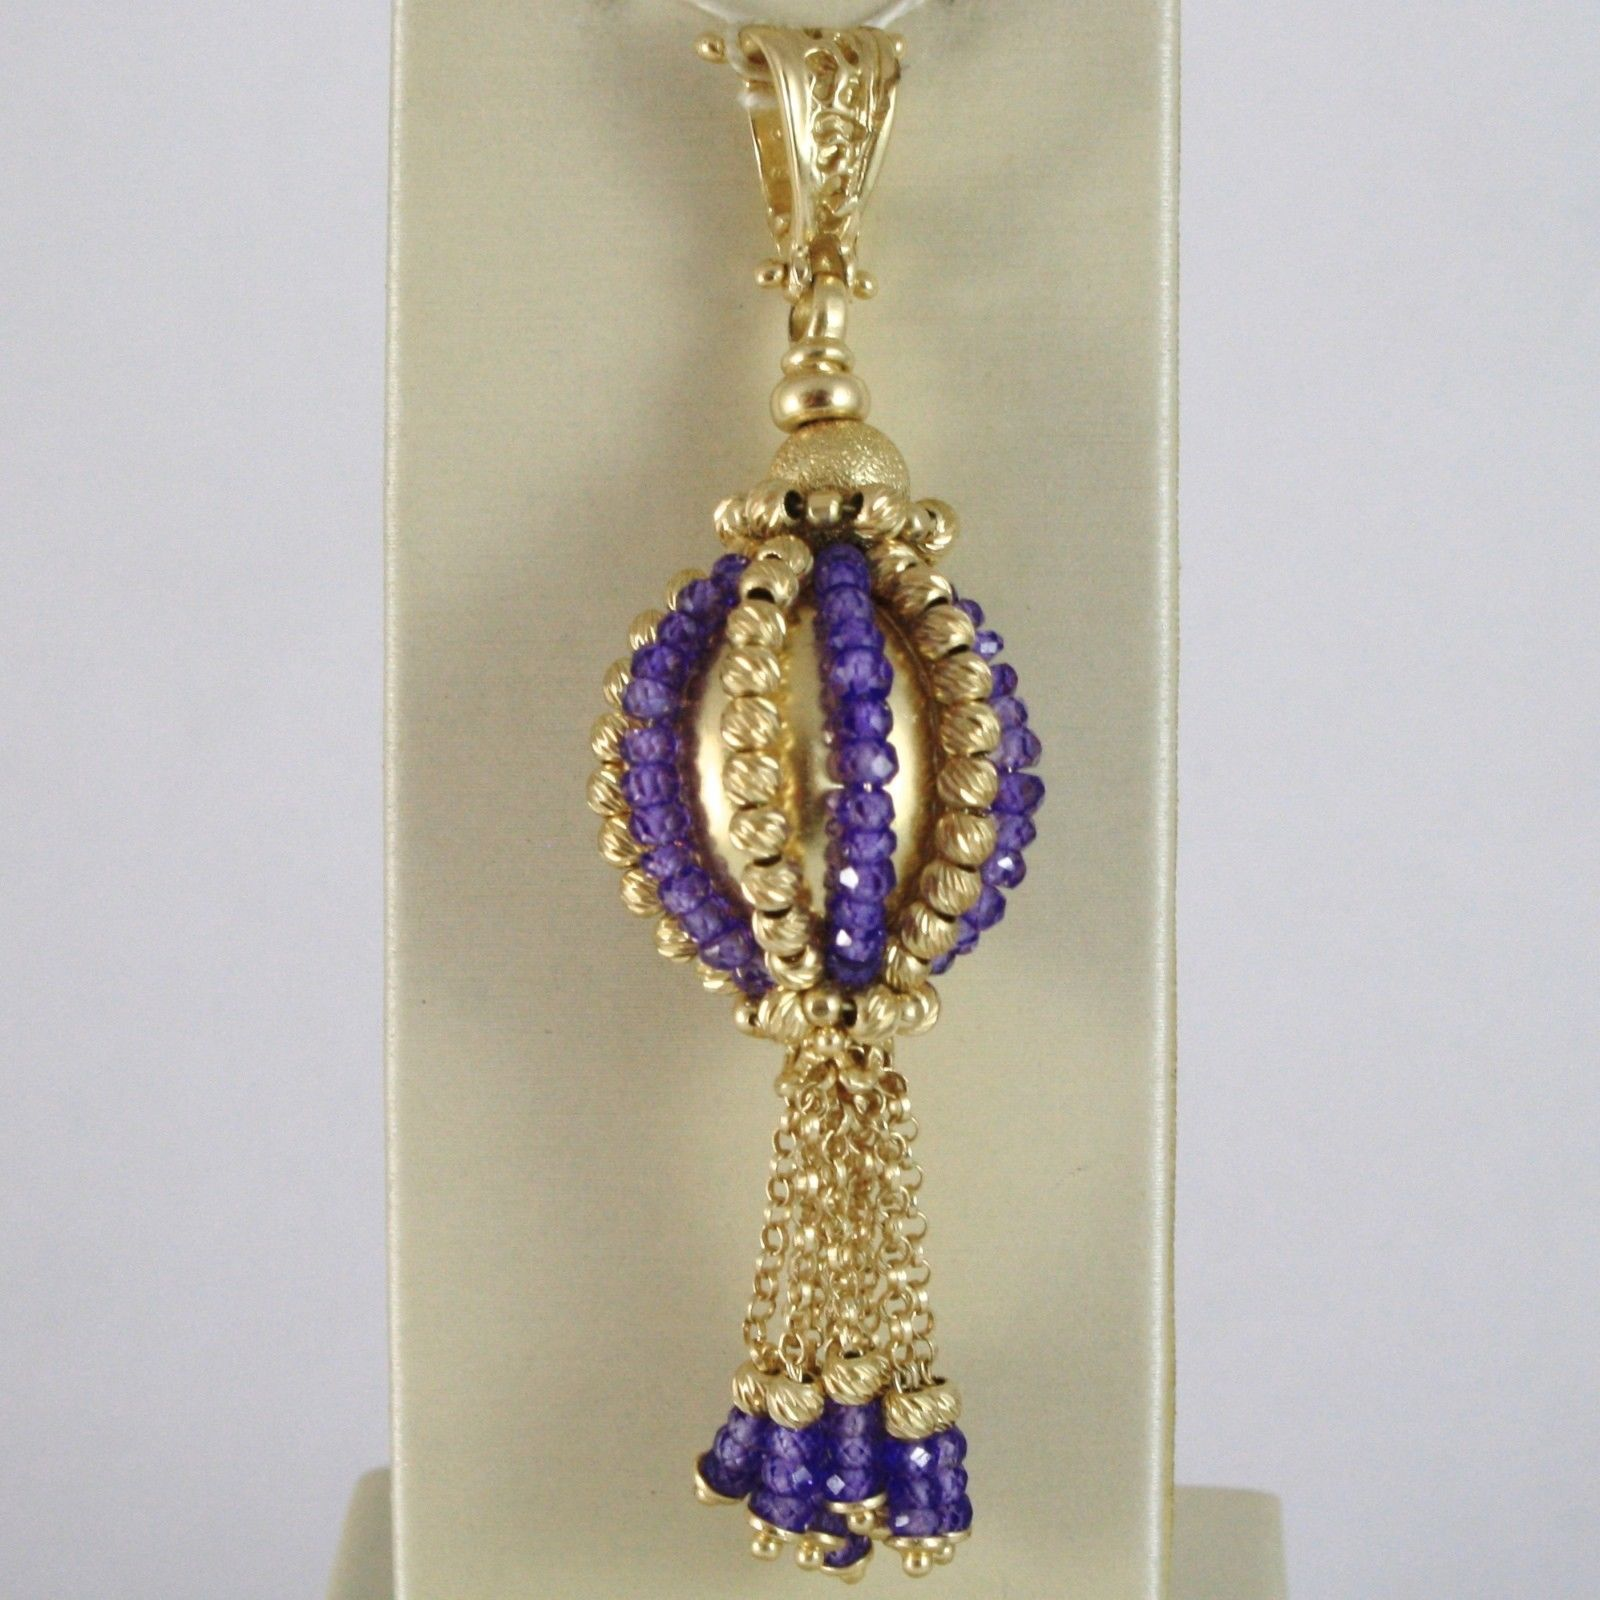 CHARM PENDANT 925 SILVER YELLOW GOLD PLATED FINELY MILLED, AMETHYST